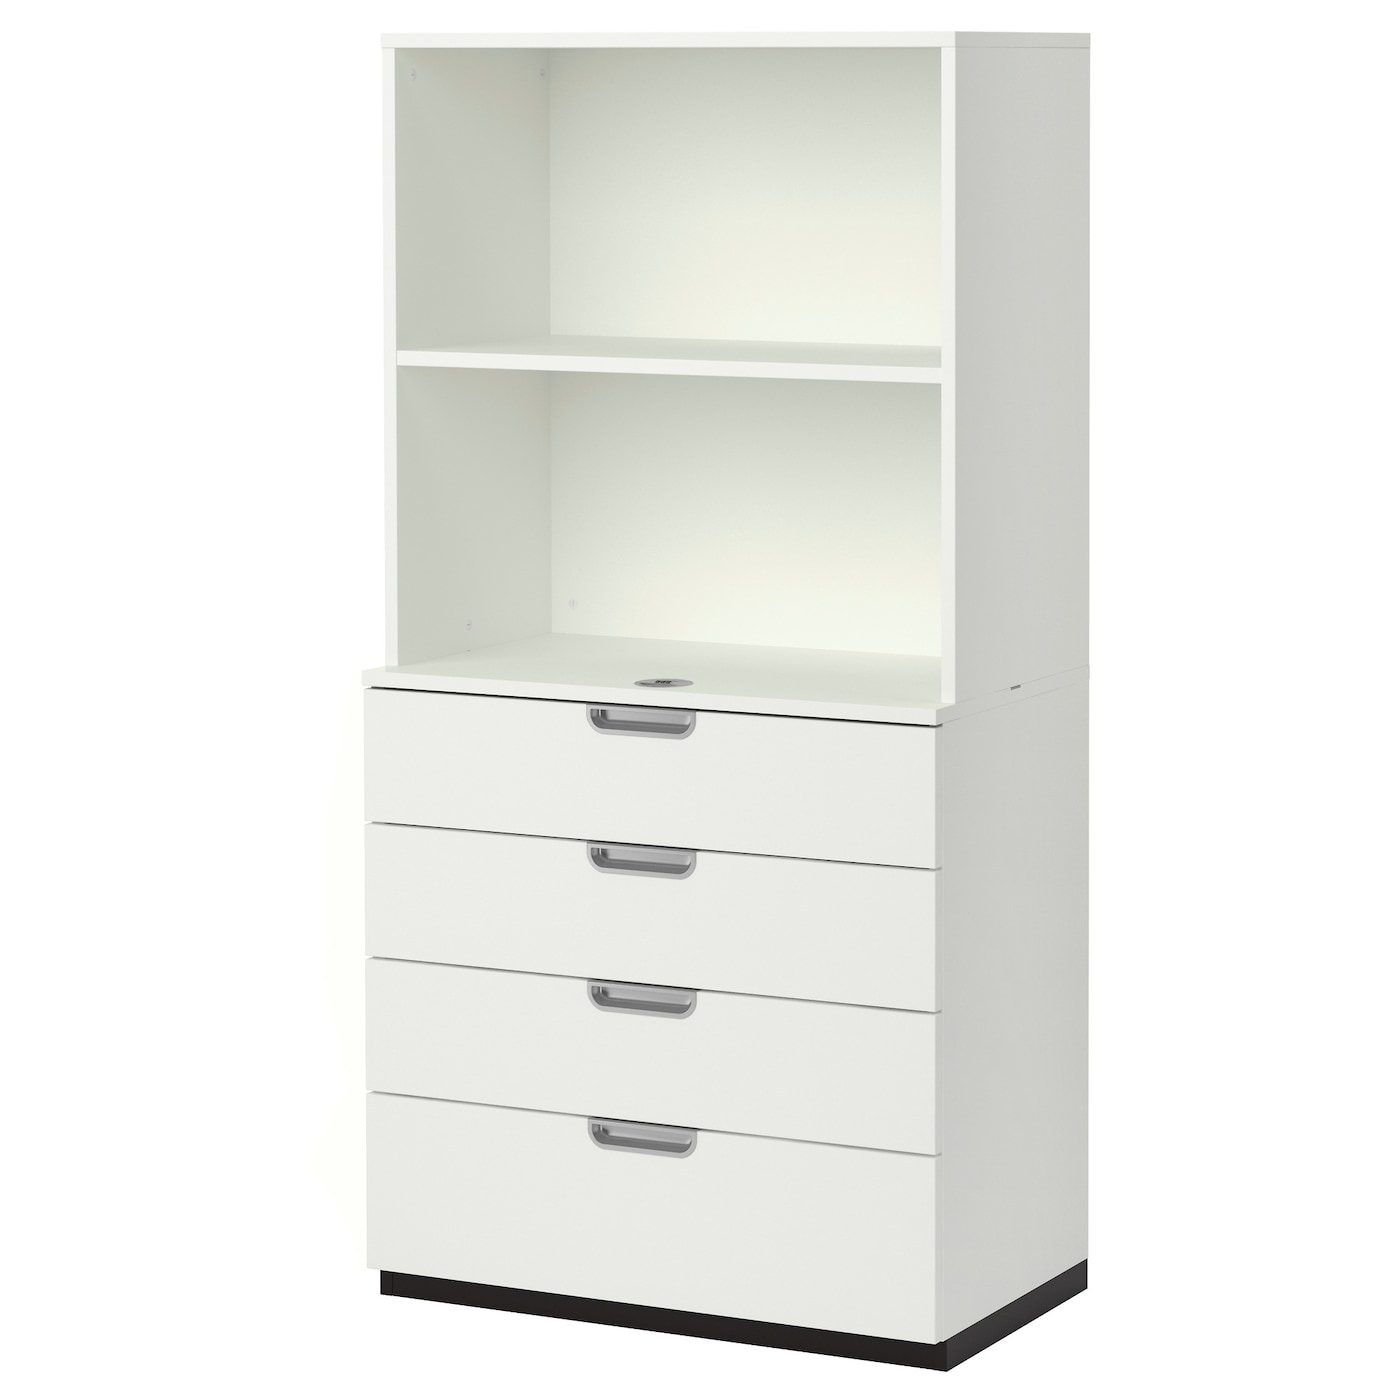 shelves sideboards adjustable regiss cabinets products en so cupboards your gb white ikea r as can door storage customise furniture cabinet you glass